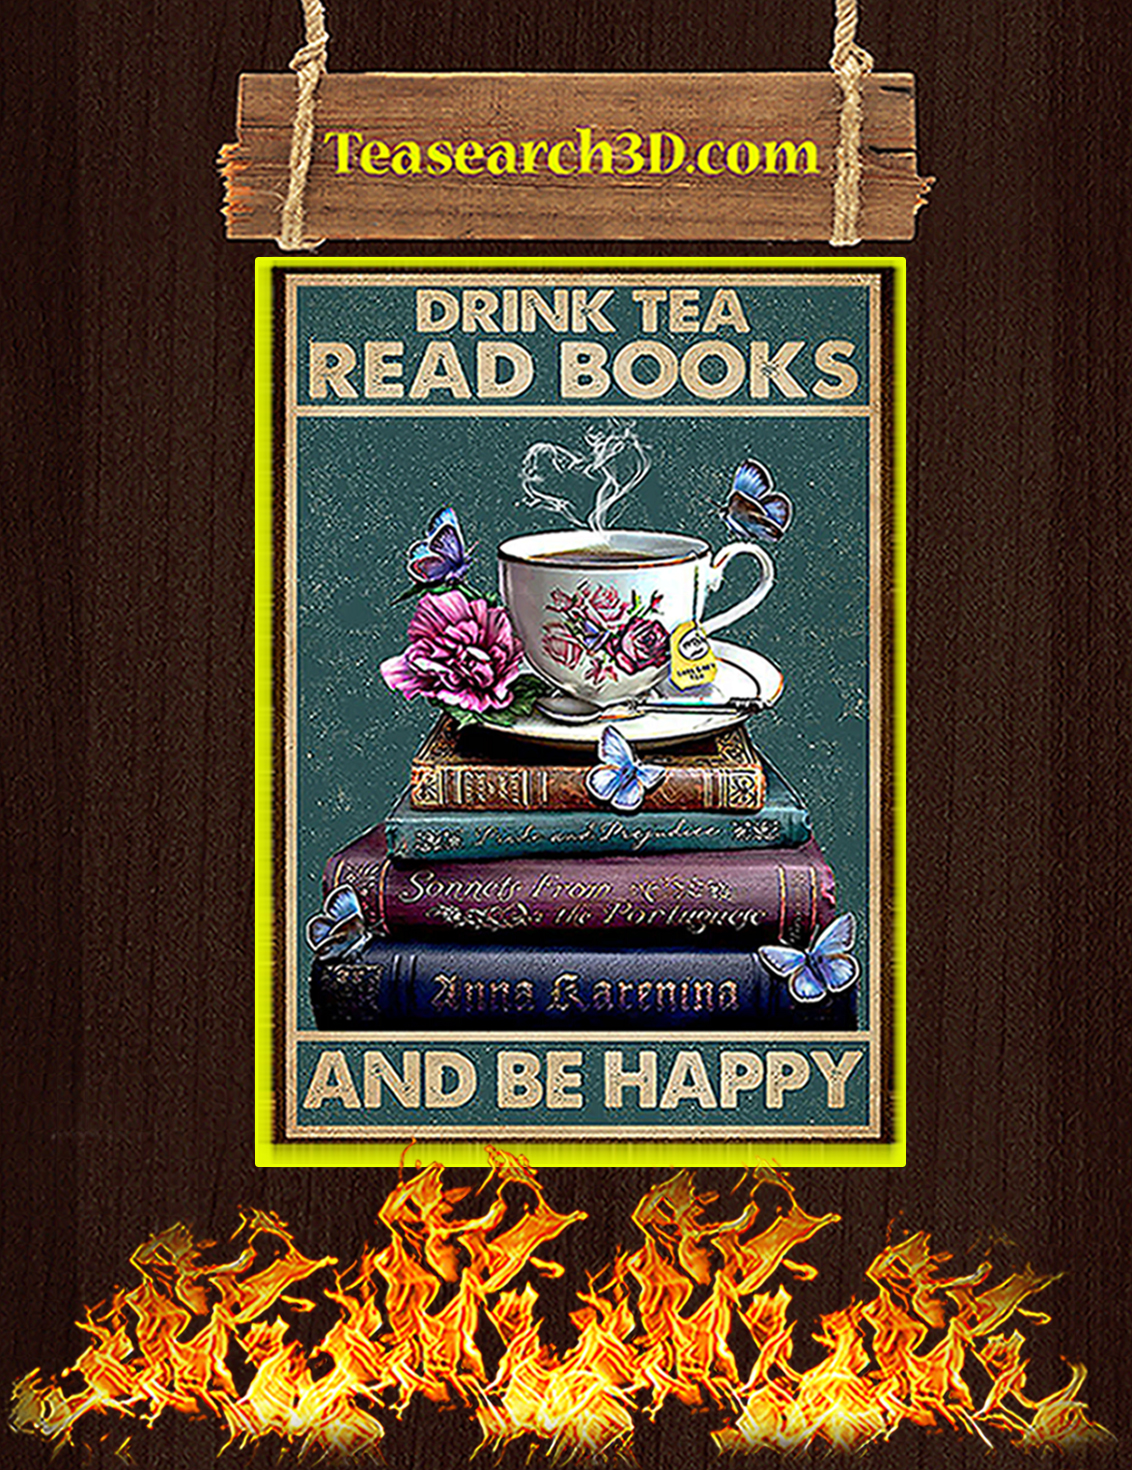 Drink tea read books and be happy poster A3